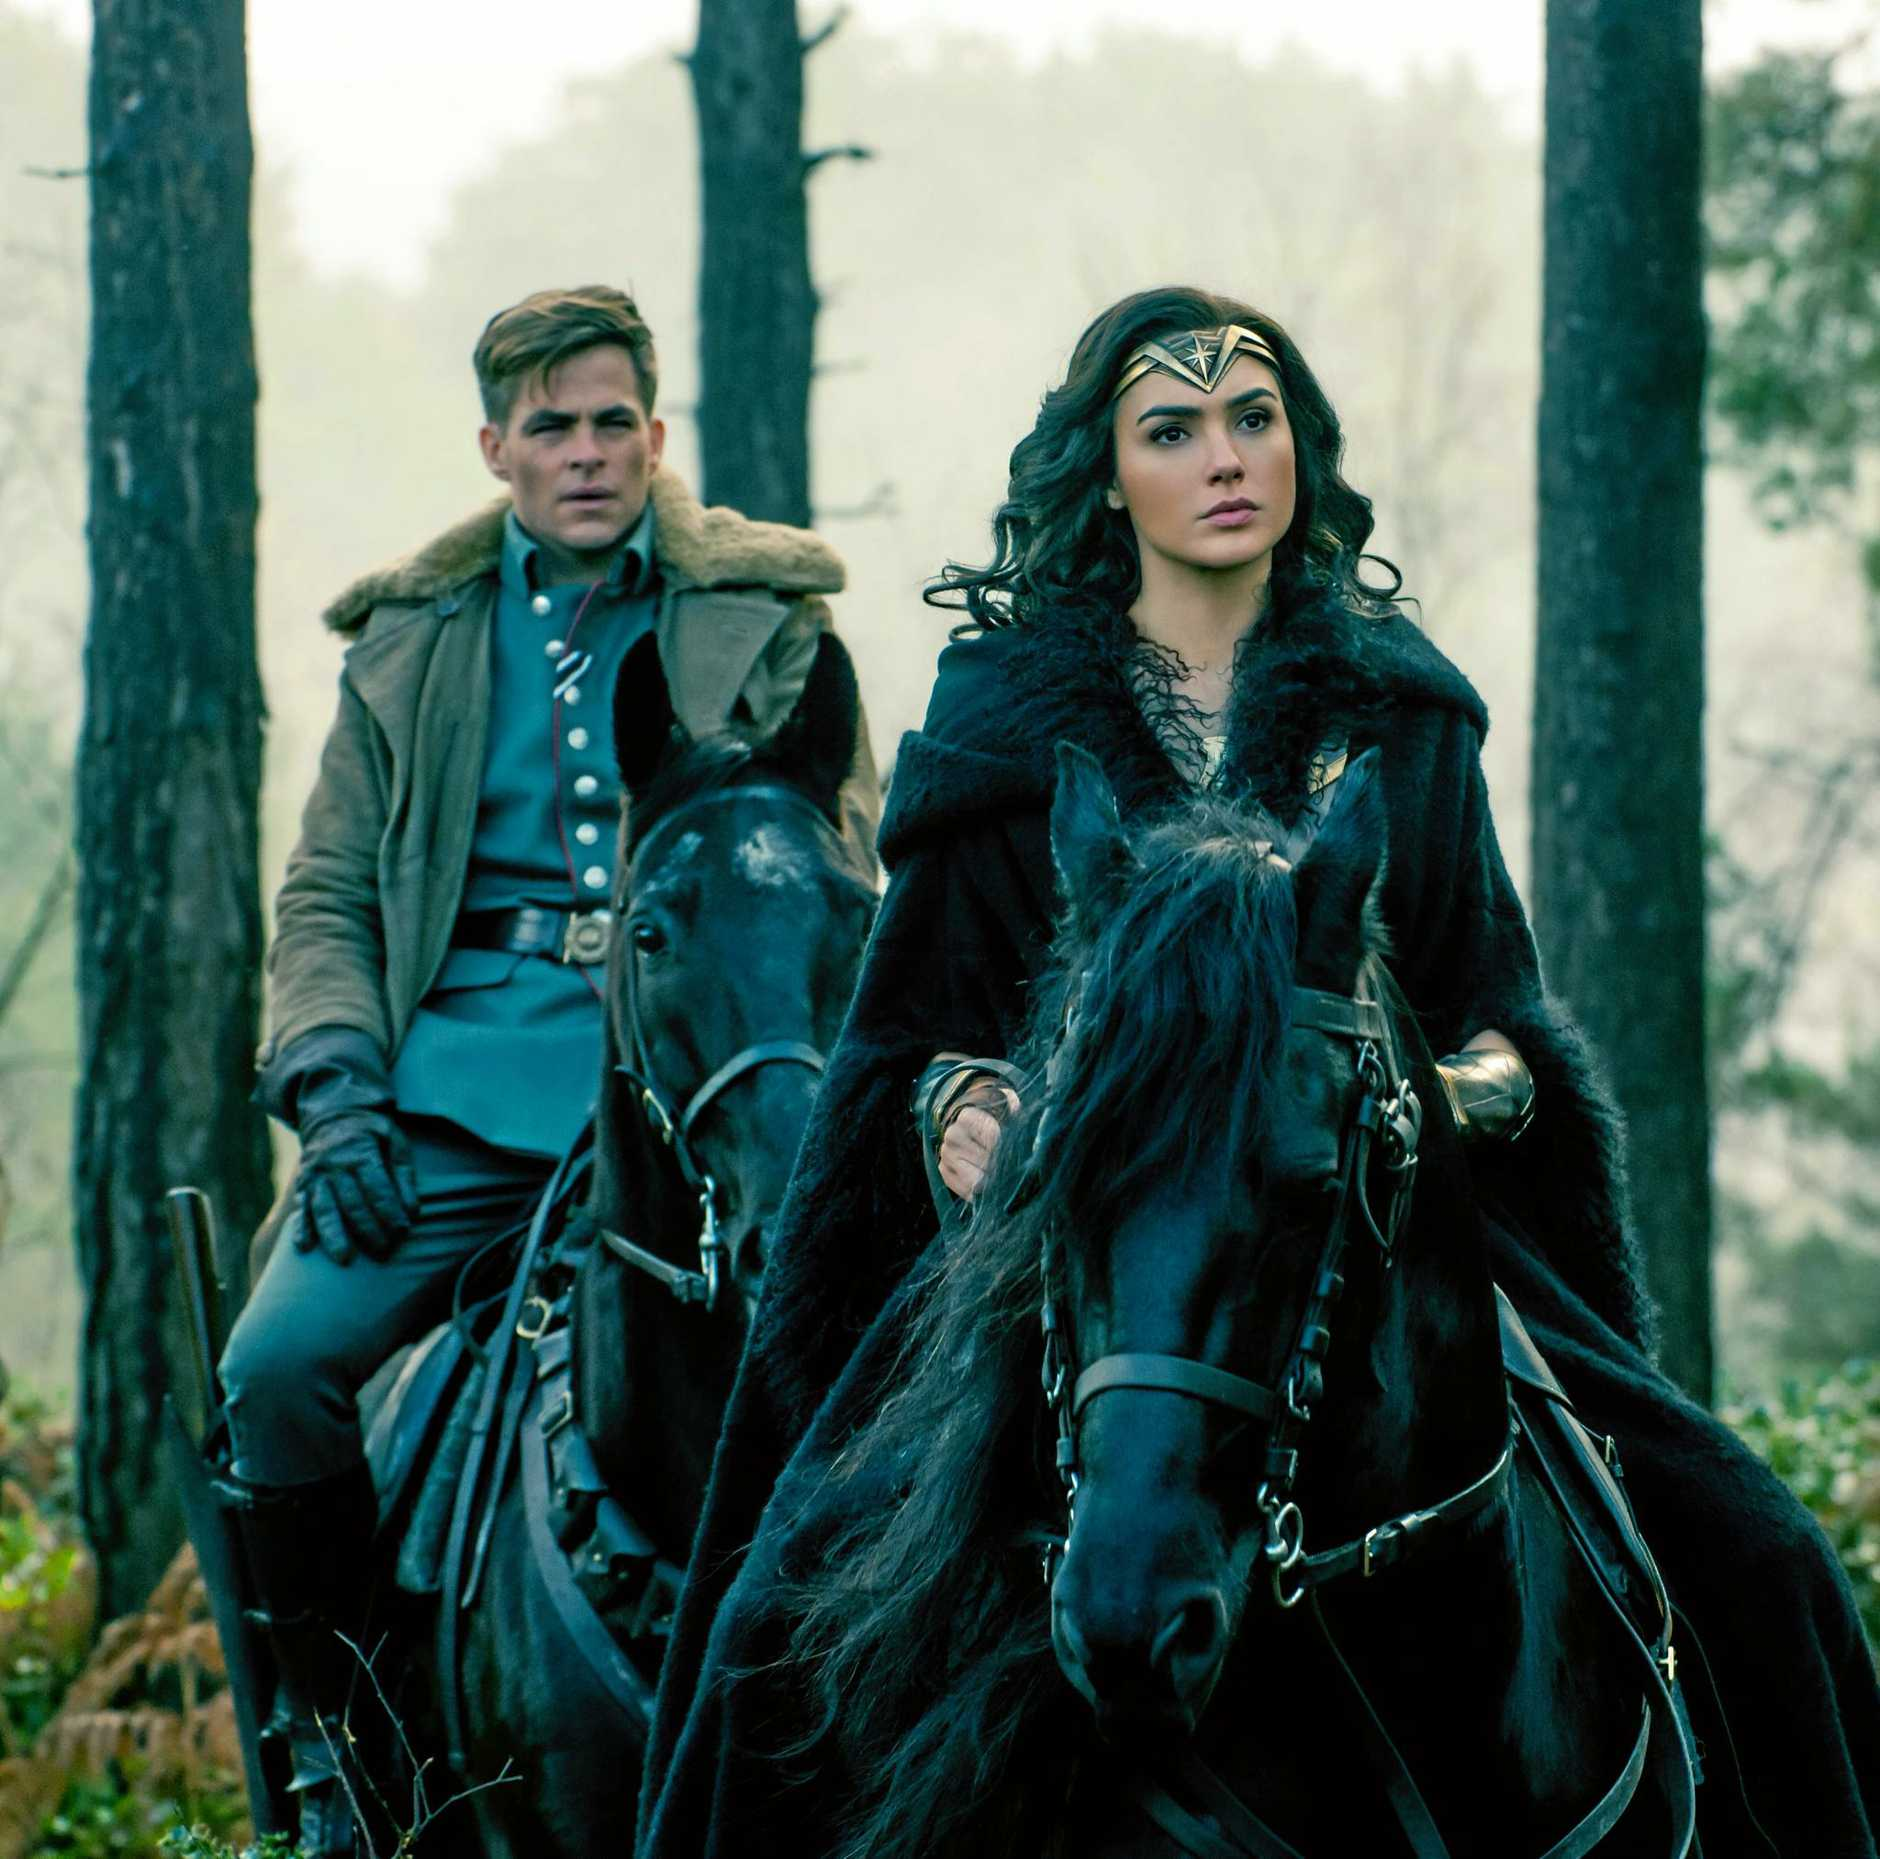 Gal Gadot and Chris Pine in a scene from the movie Wonder Woman.